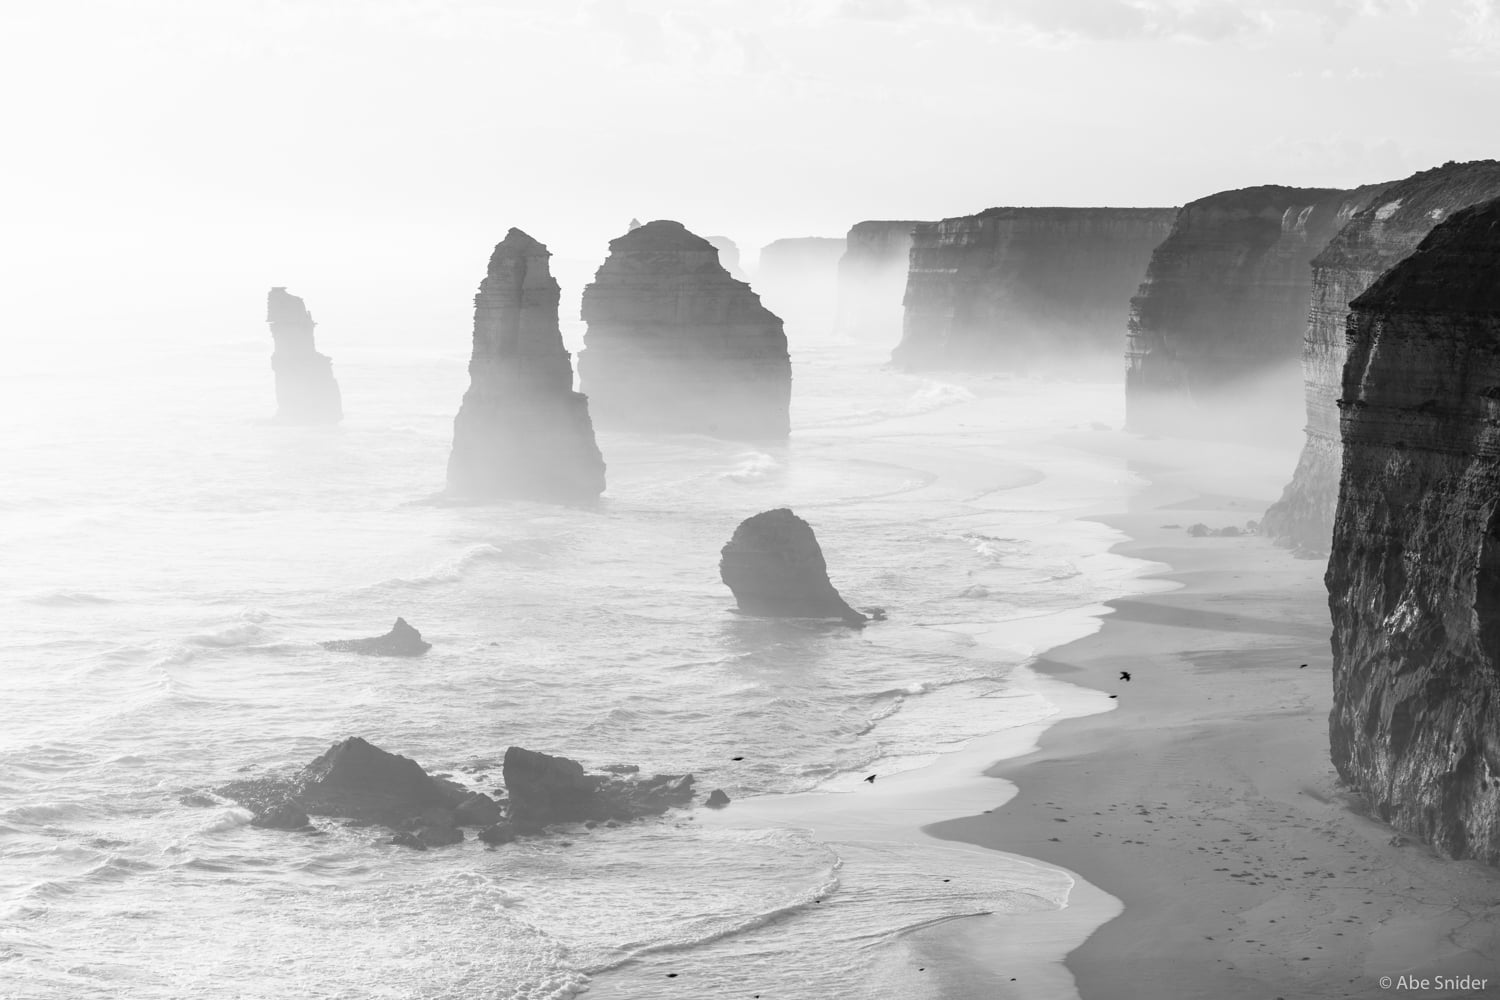 Twelve Apostles (there aren't 12 anymore) at sunset when the mist creates some really dramatic atmospherics.